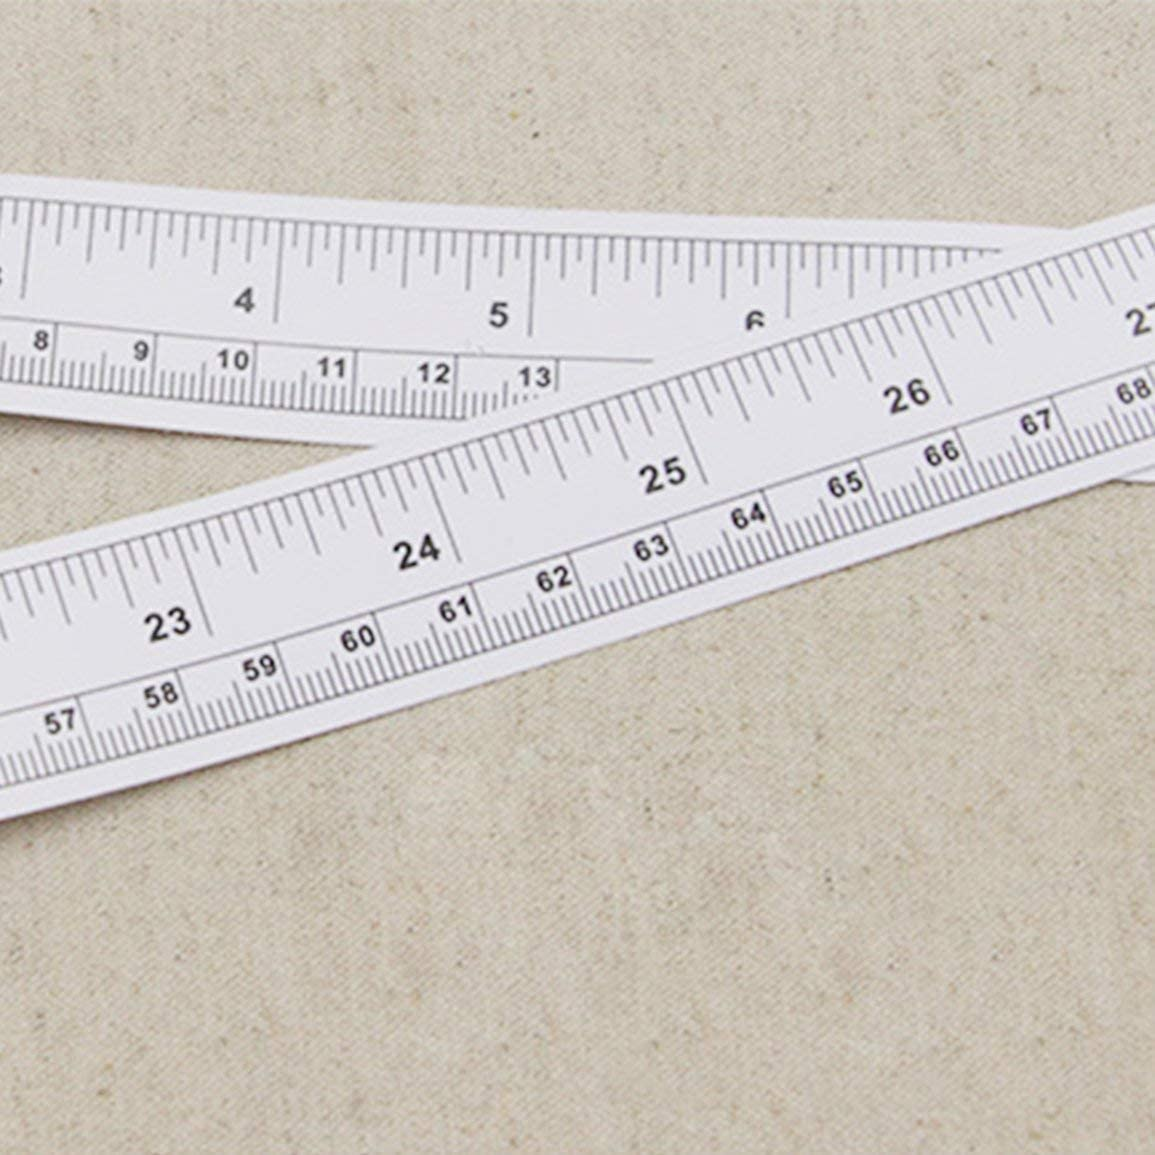 Sticky Ruler 90cm Sticky Scale Self Adhesive Metric Measure Gauge Tape Vinyl Ruler for Sewing Machine Sticker Color:White/&Black